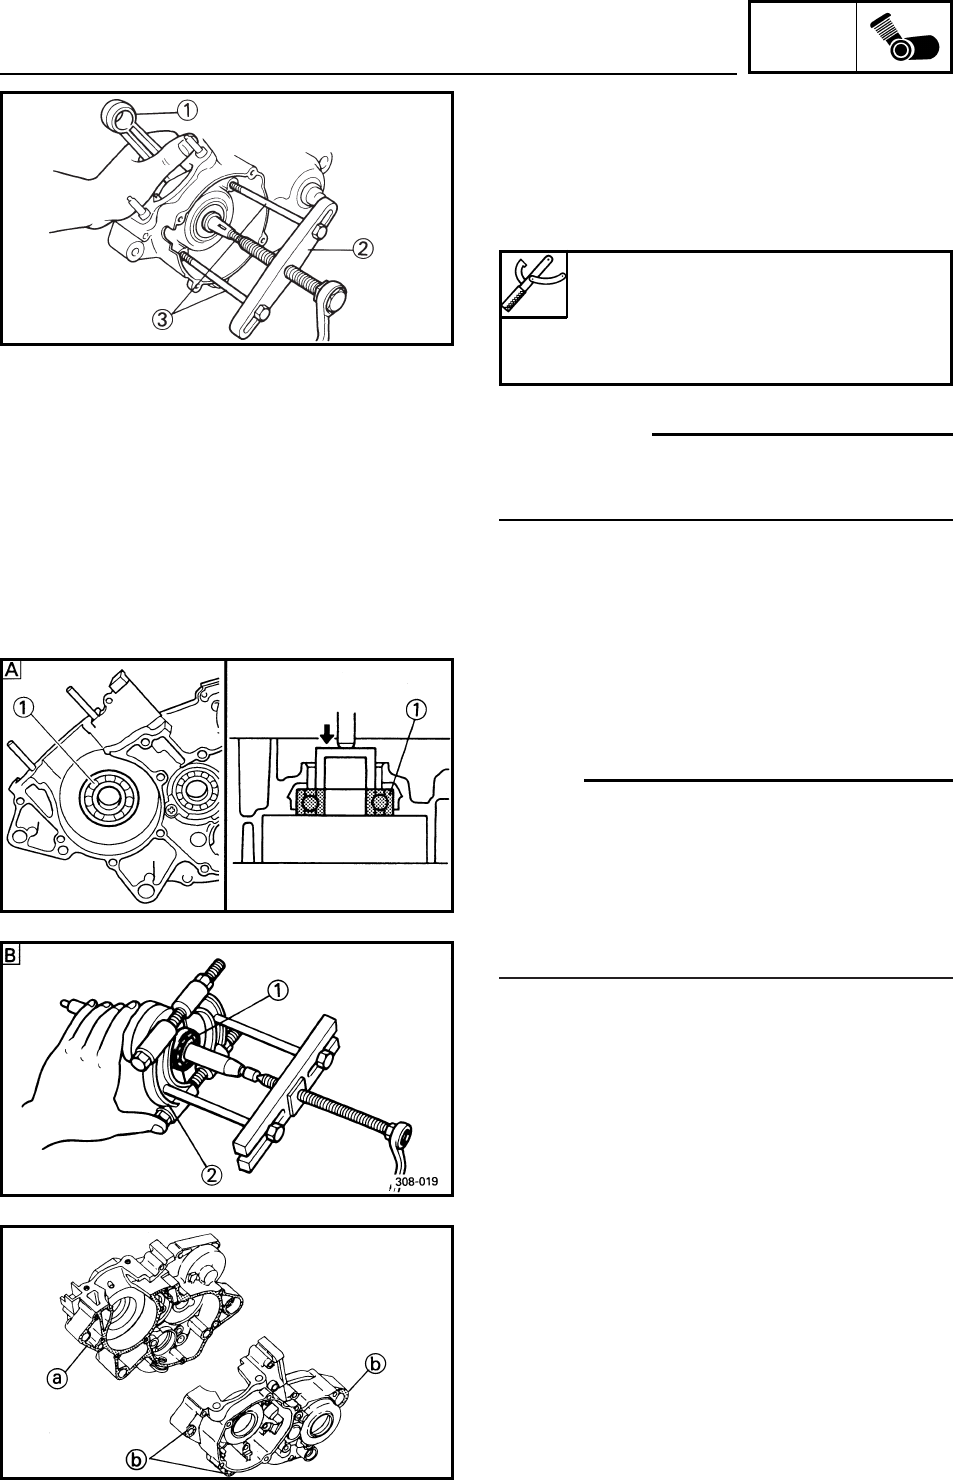 Page 151 Of Yamaha Motorcycle Yz125n1 User Guide Manualsonlinecom Fzx700 Wiring Diagram 4 64